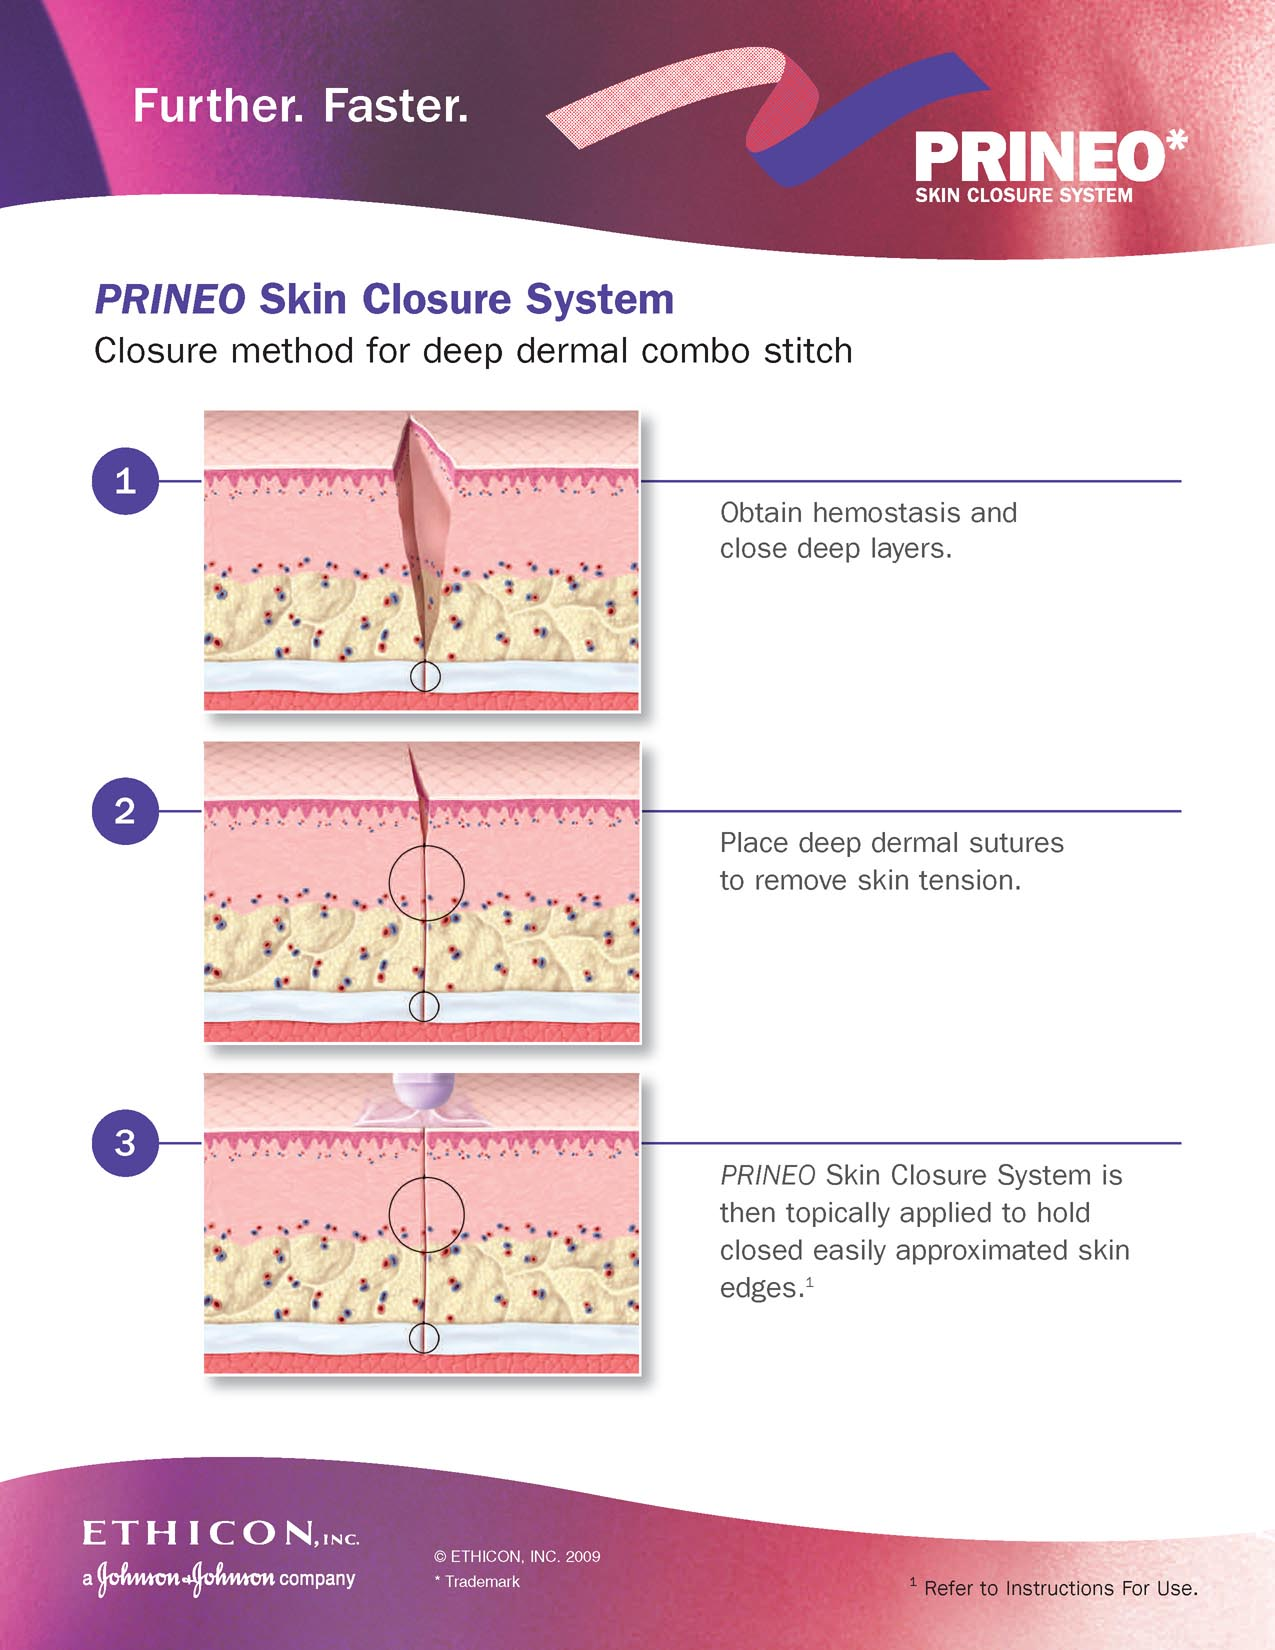 Prineo Quick Reference Guide_Page_1.jpg